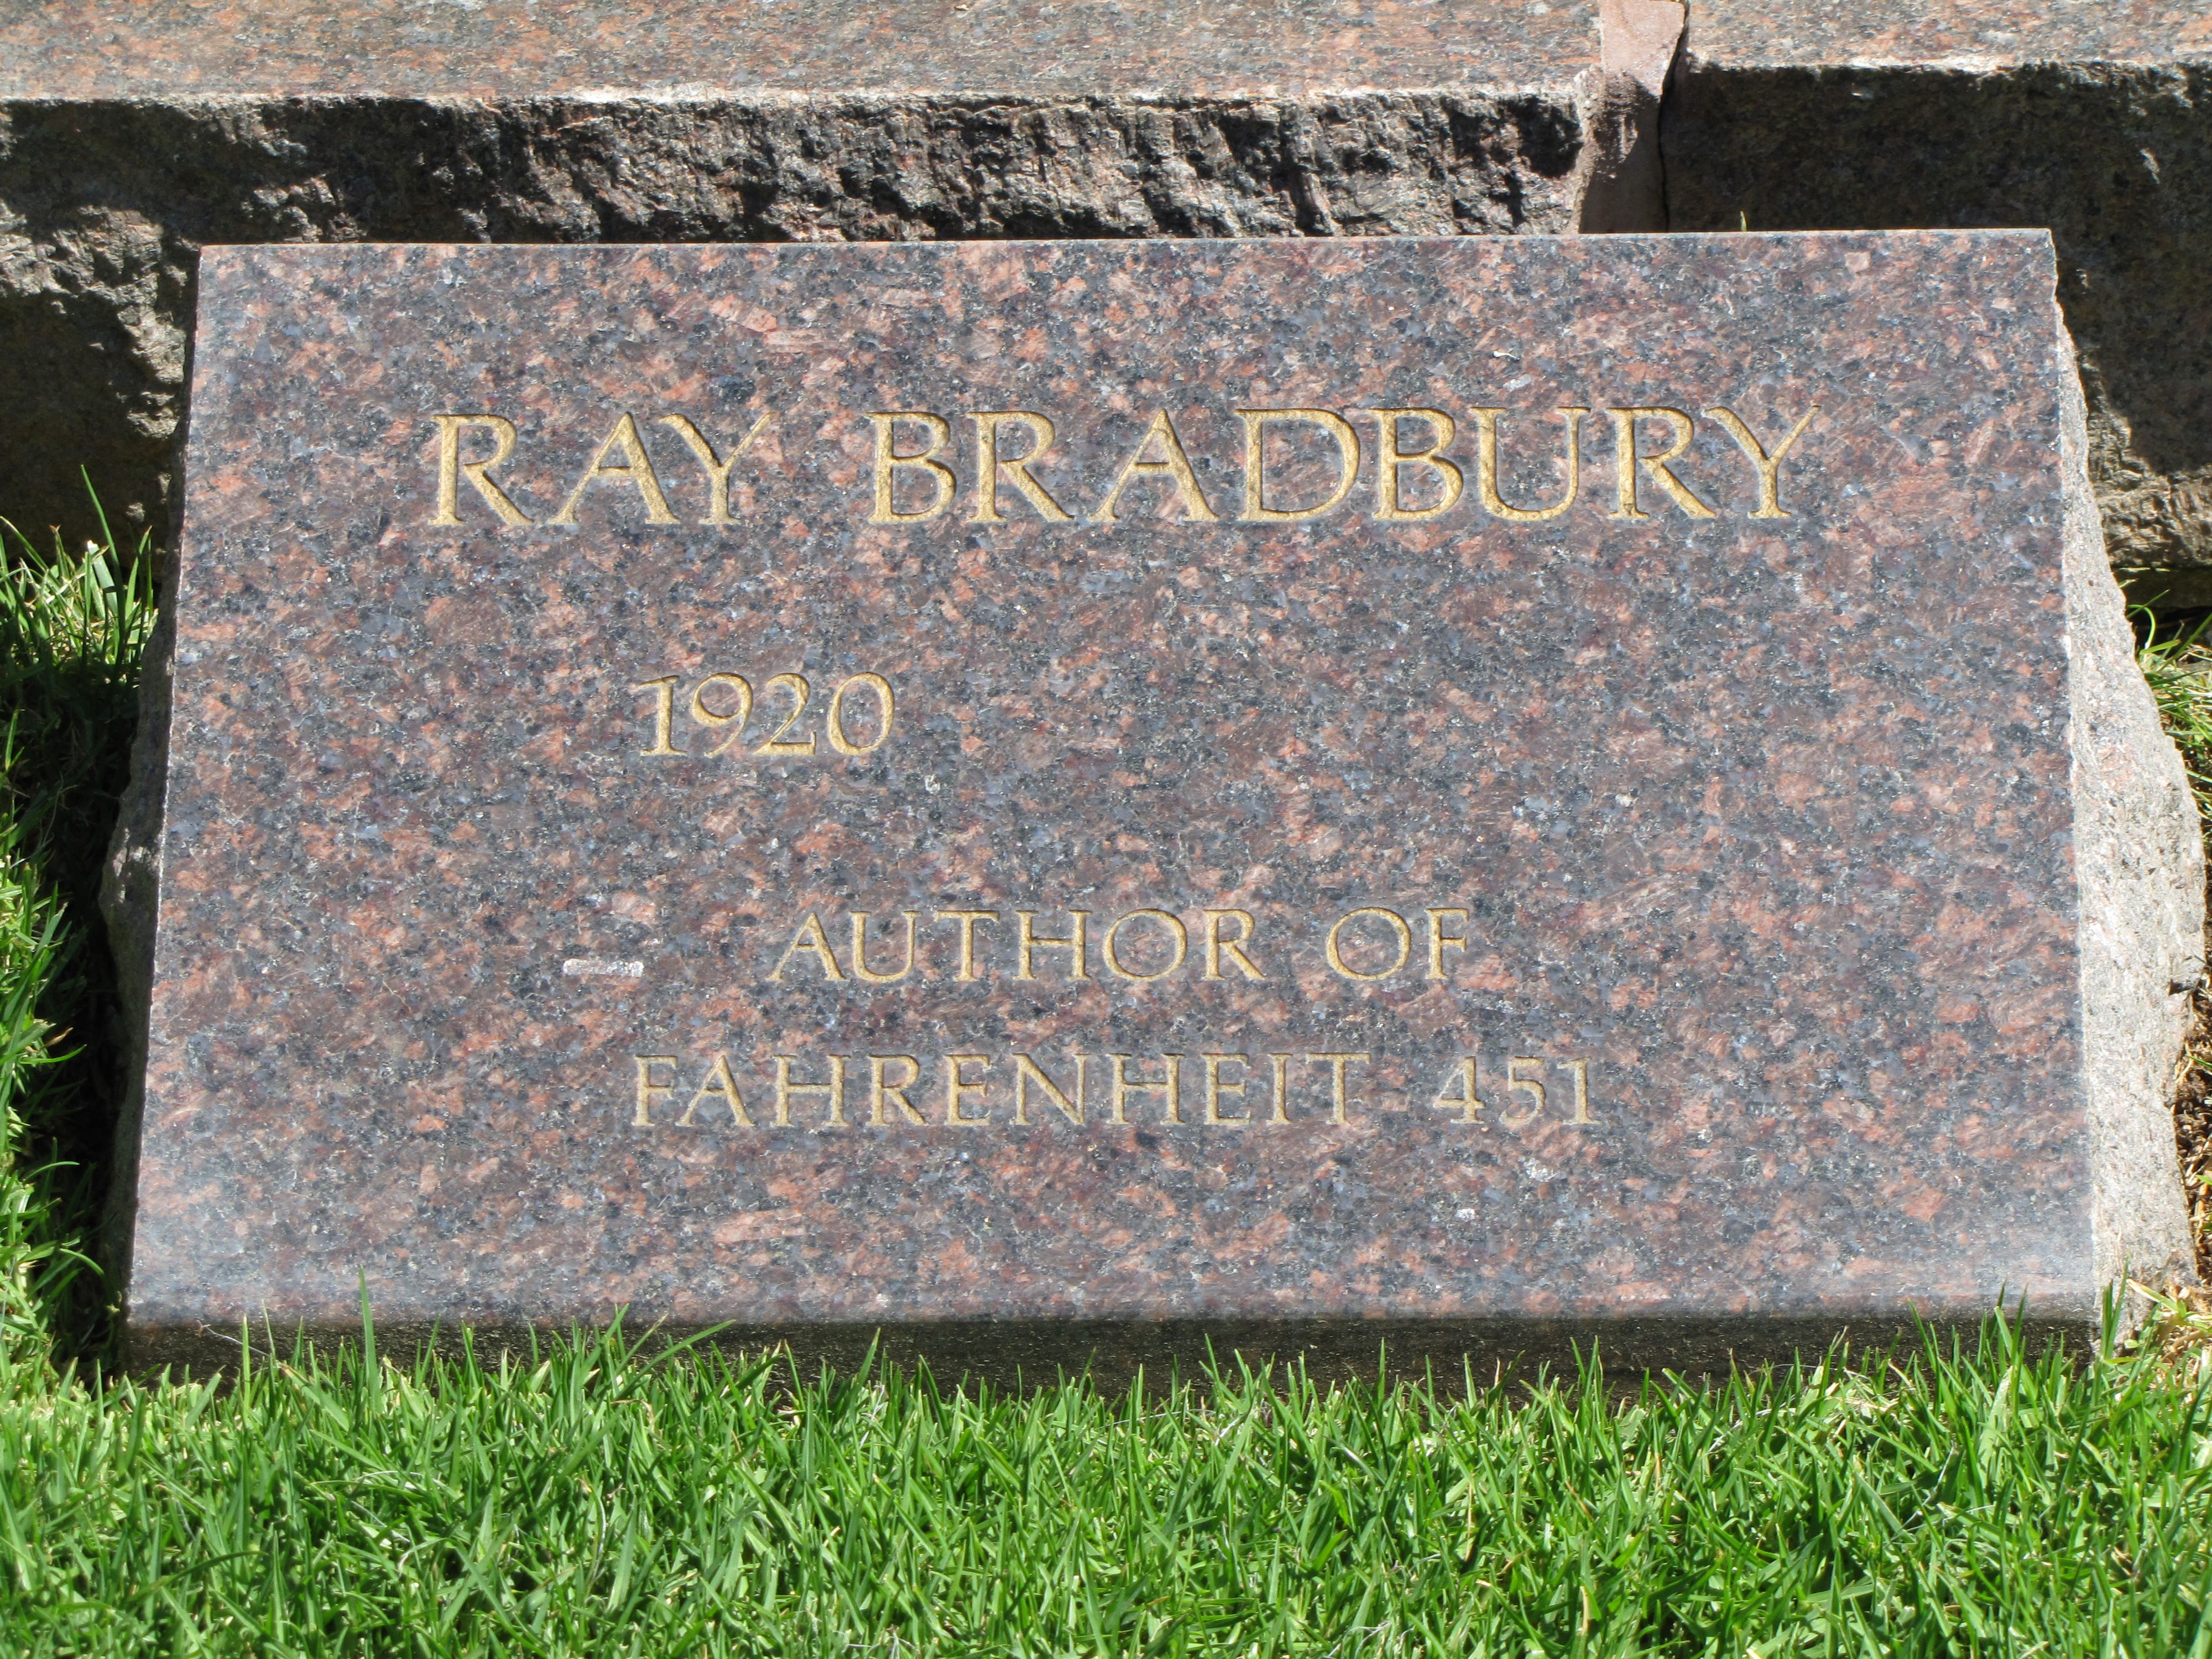 Ray Bradburyu0027s headstone in May 2012 prior to his death